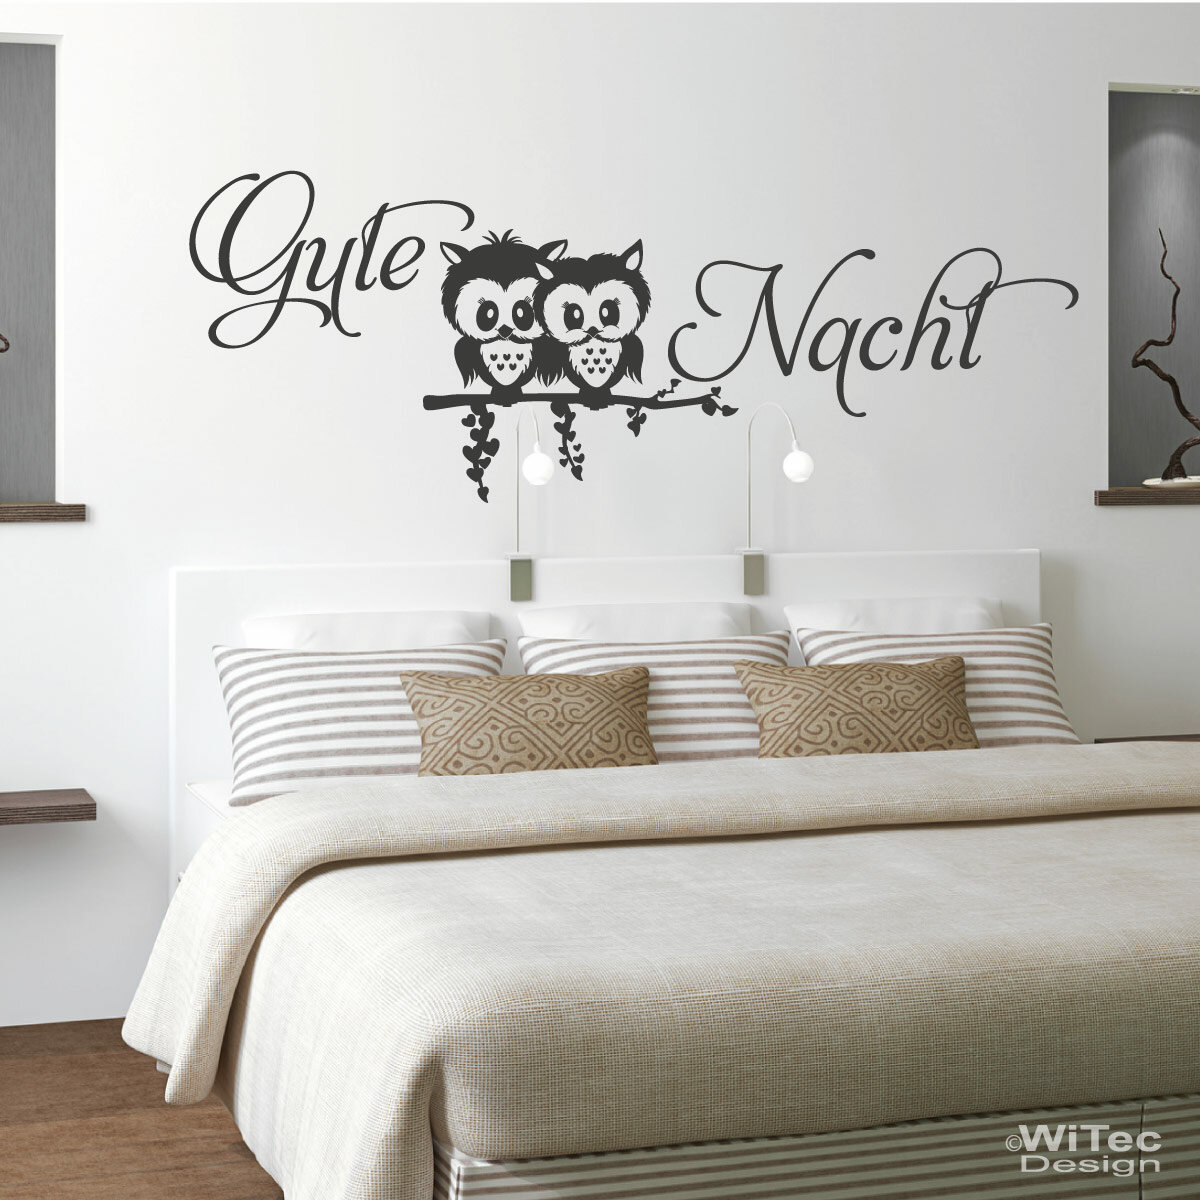 eulen gute nacht liebe wandtattoo wandaufkleber. Black Bedroom Furniture Sets. Home Design Ideas